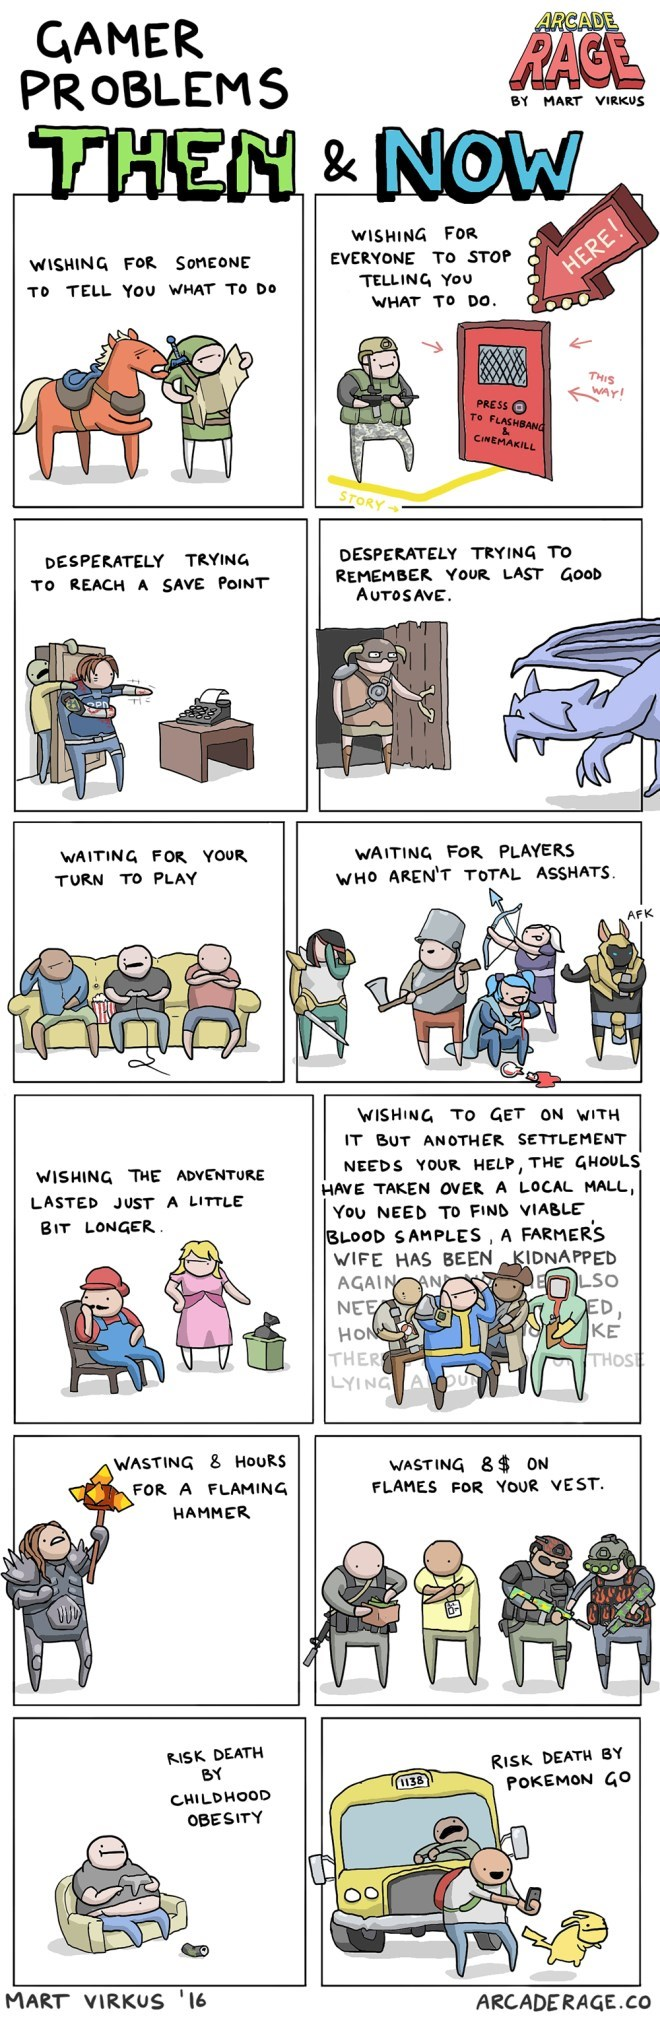 web-comics-gamer-problems-then-vs-now